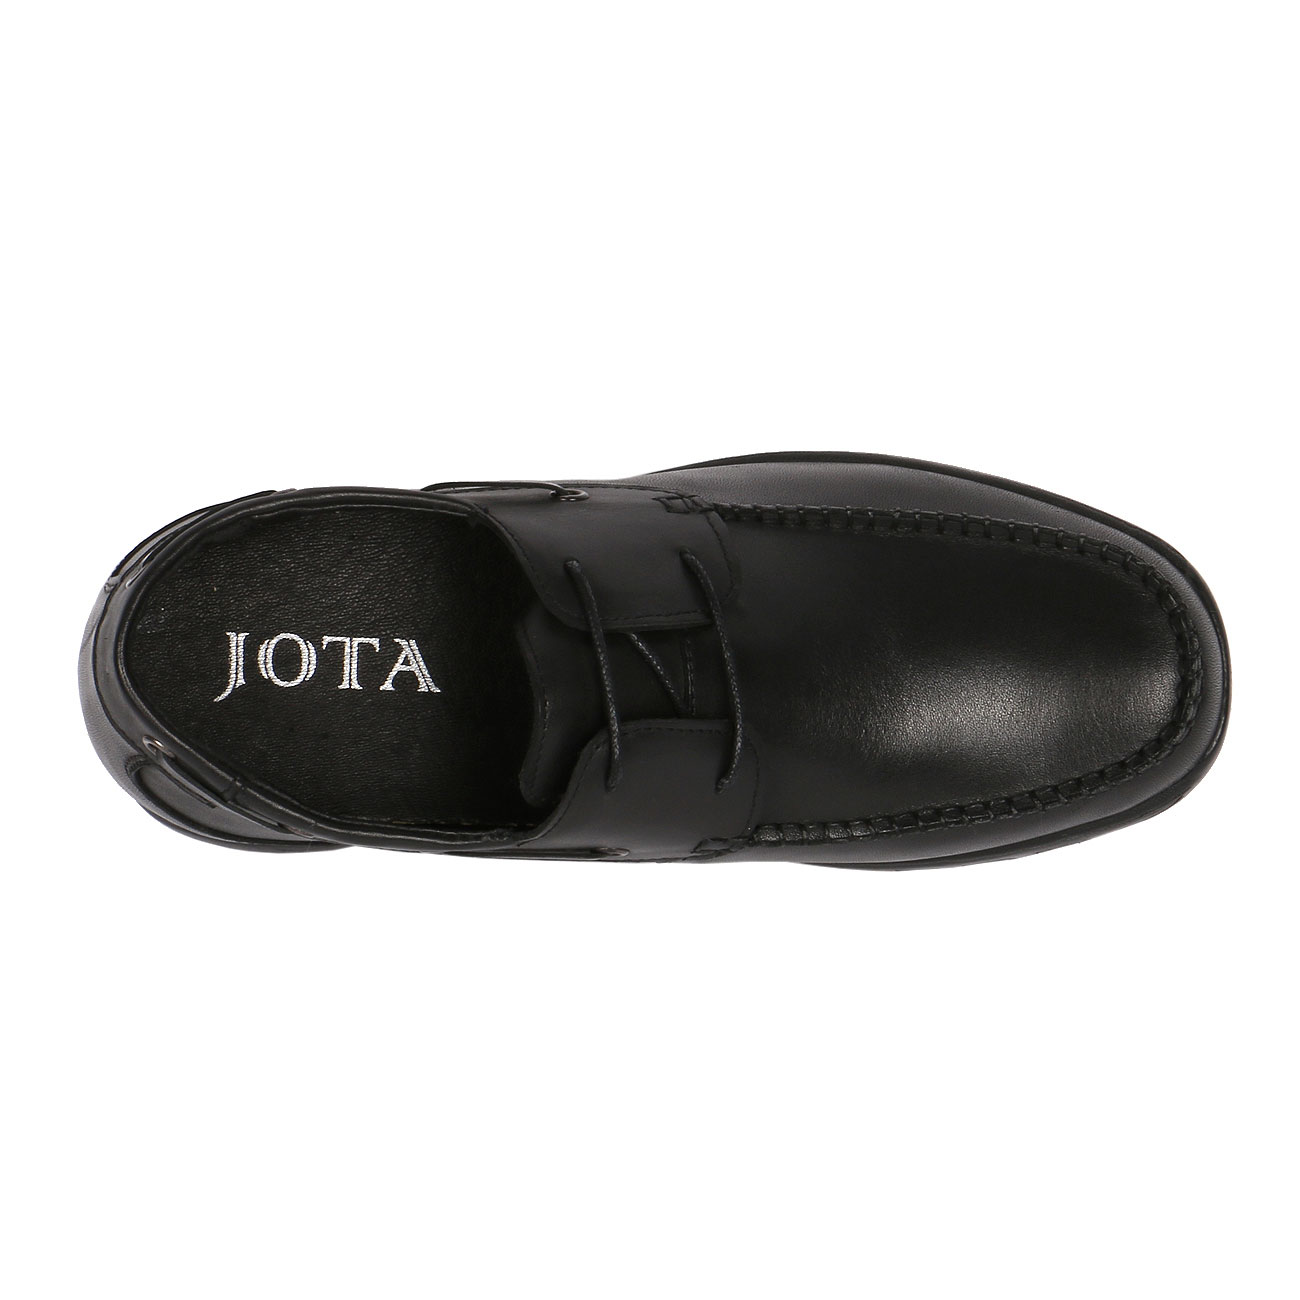 Height Increasing Tall Mens JOTA's Boat Shoes, CYC30BL